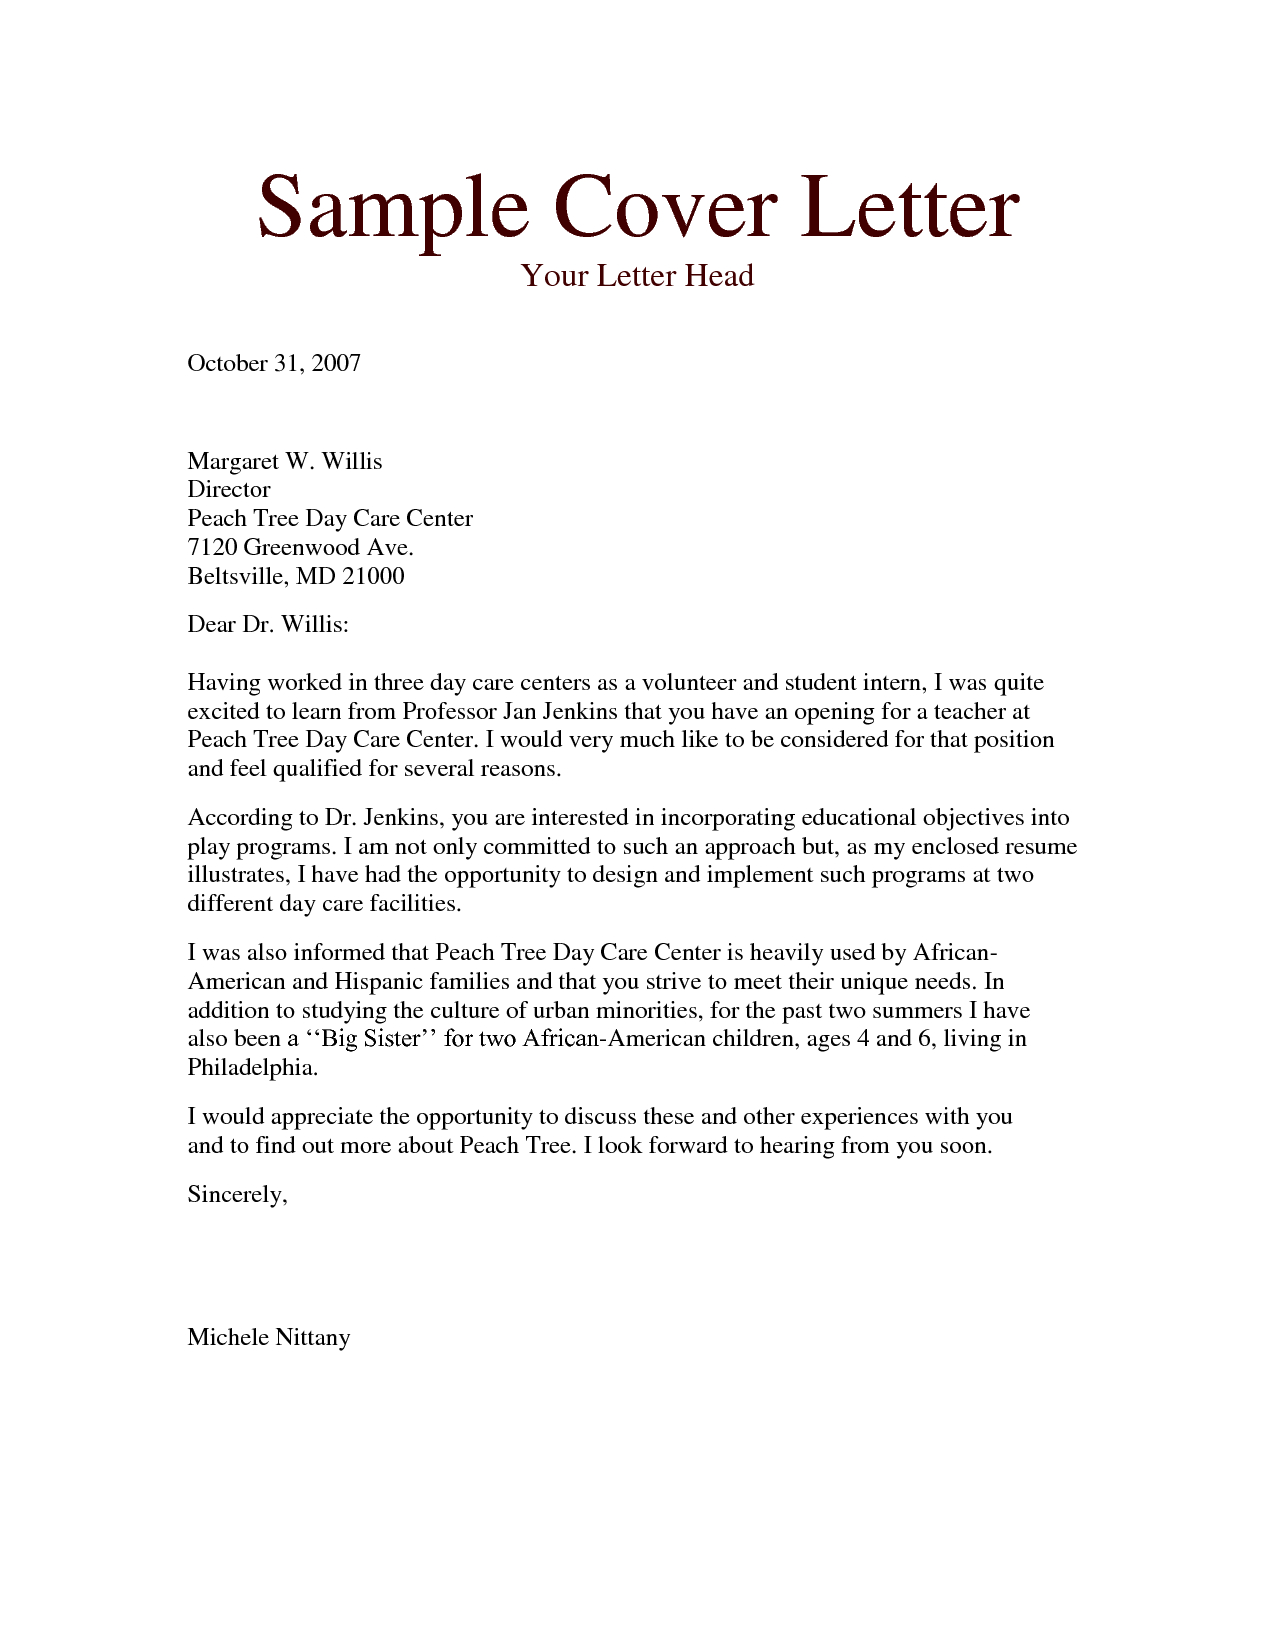 School Secretary Cover Letter Template - Writing A Cover Letter for Executive assistant How to Write A Cover